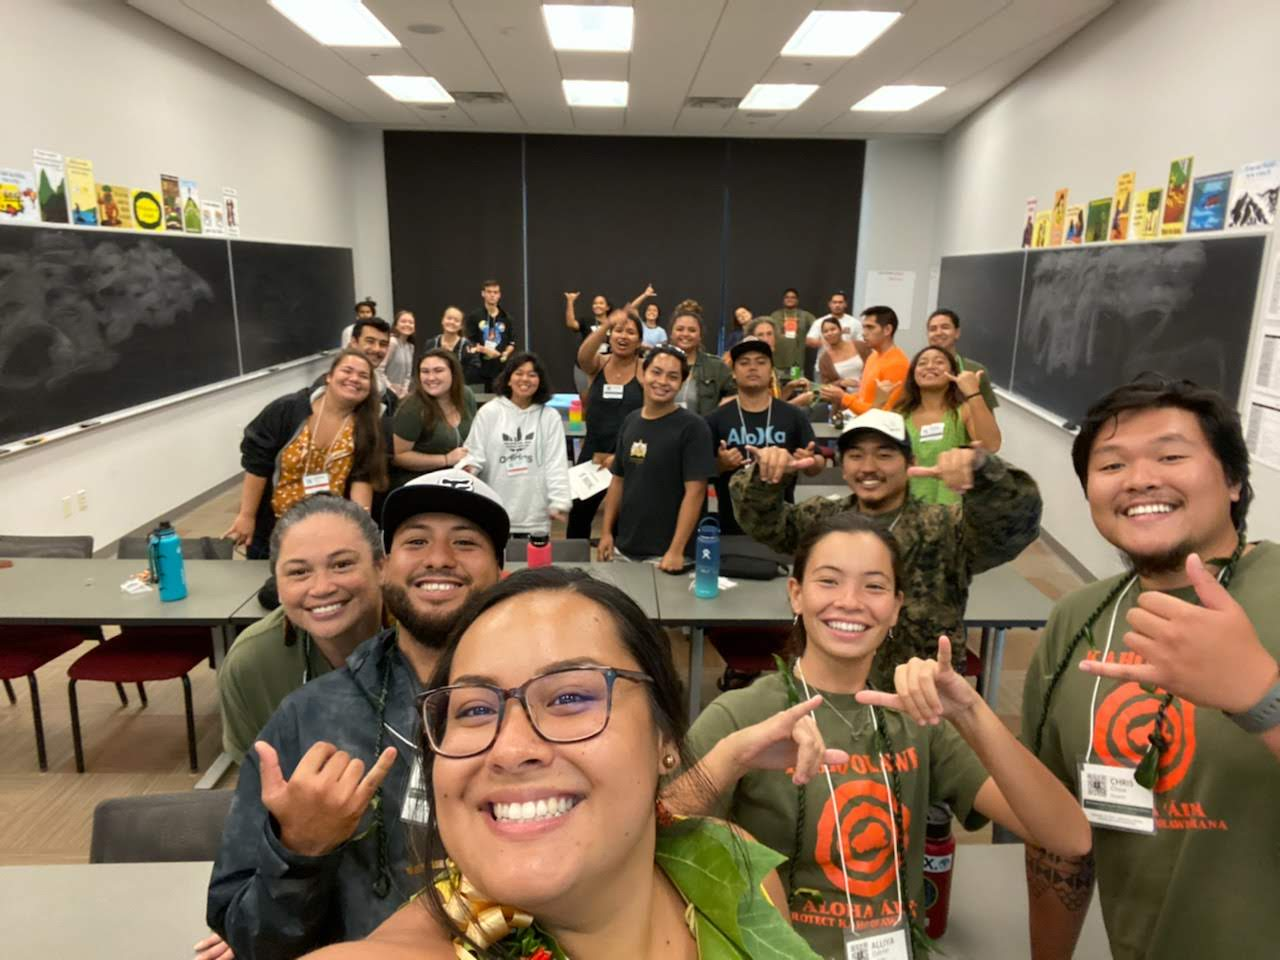 UH Hilo students throw shakas for a group photo.